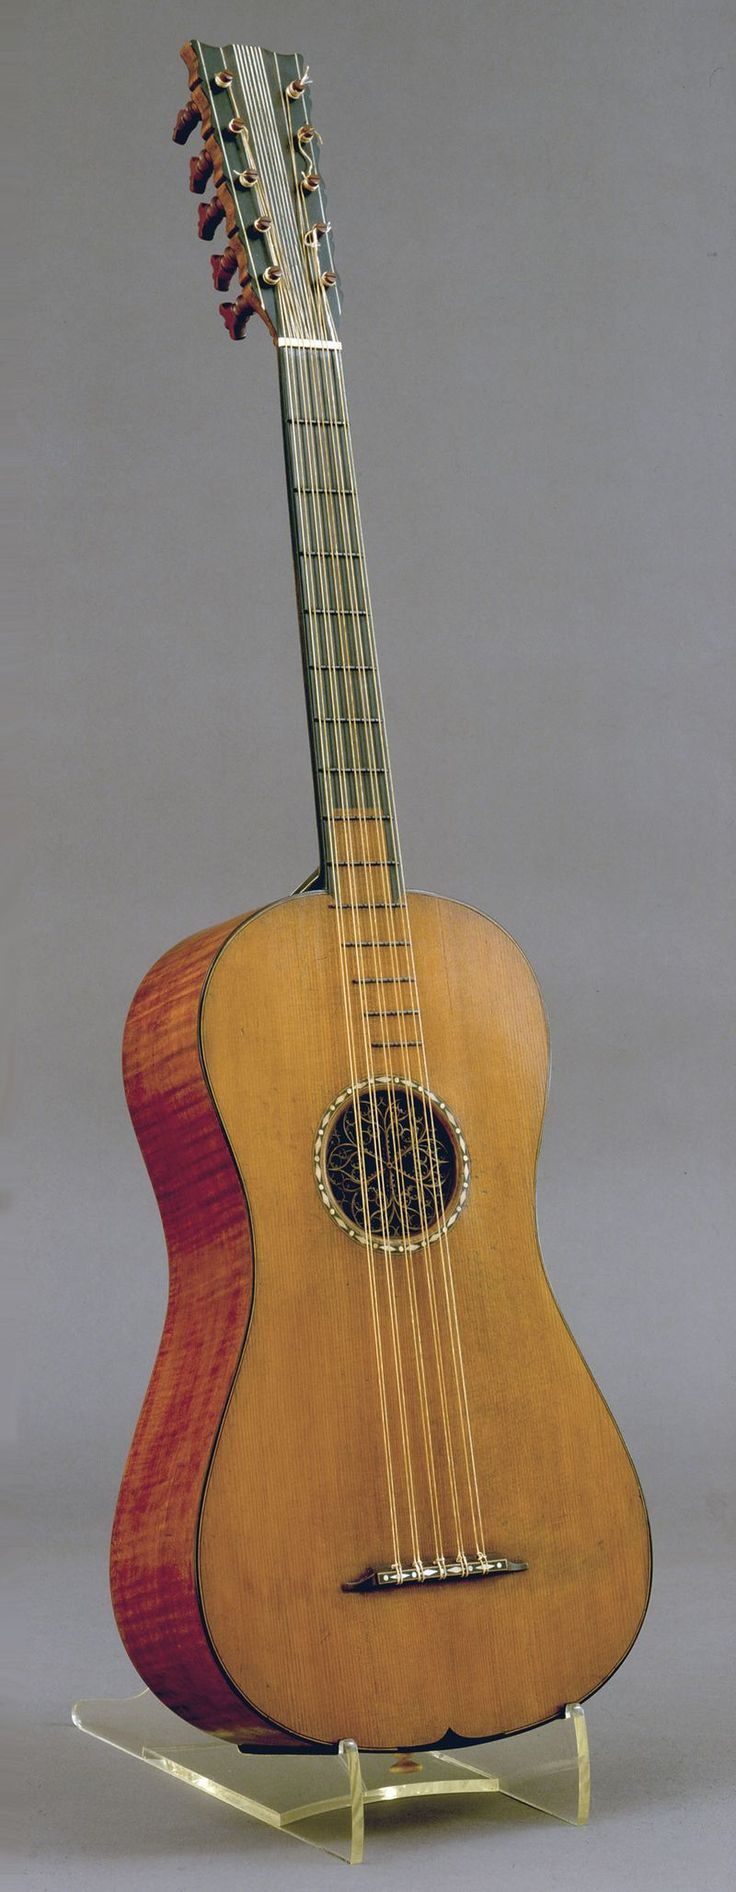 """Antonio Stradivari (1644–1737) """"The Rawlins"""" guitar, 1700, Cremona, Italy. The famed luthier (stringed instrument maker) Antonio Stradivari built a handful of guitars, of which four are known to survive. Stradivari's guitars are the earliest known guitars that use the same basic wood choices of spruce for the top and maple for the sides and backs.  These are the same woods used for violins, and are standard wood choices for modern day archtop guitar builders."""